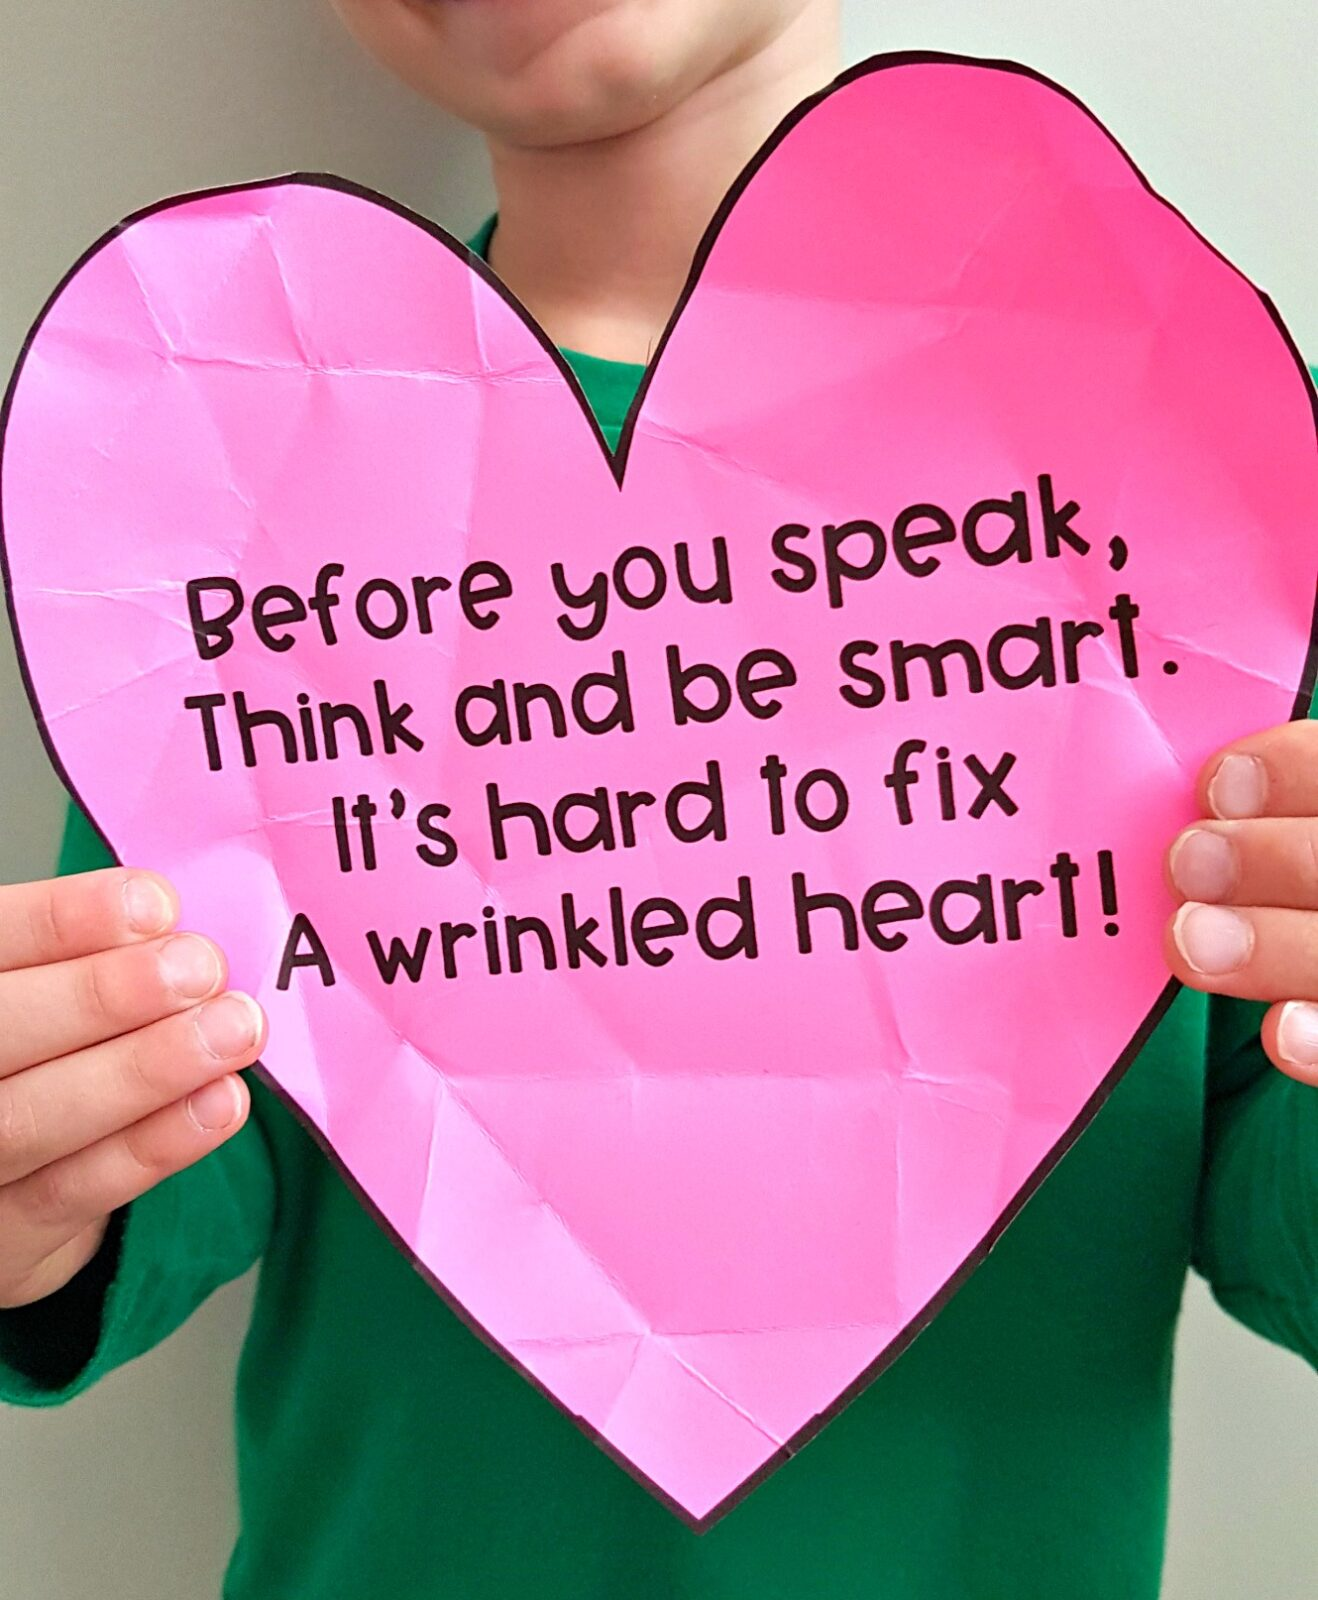 teaching empathy - a wrinkled heart poem